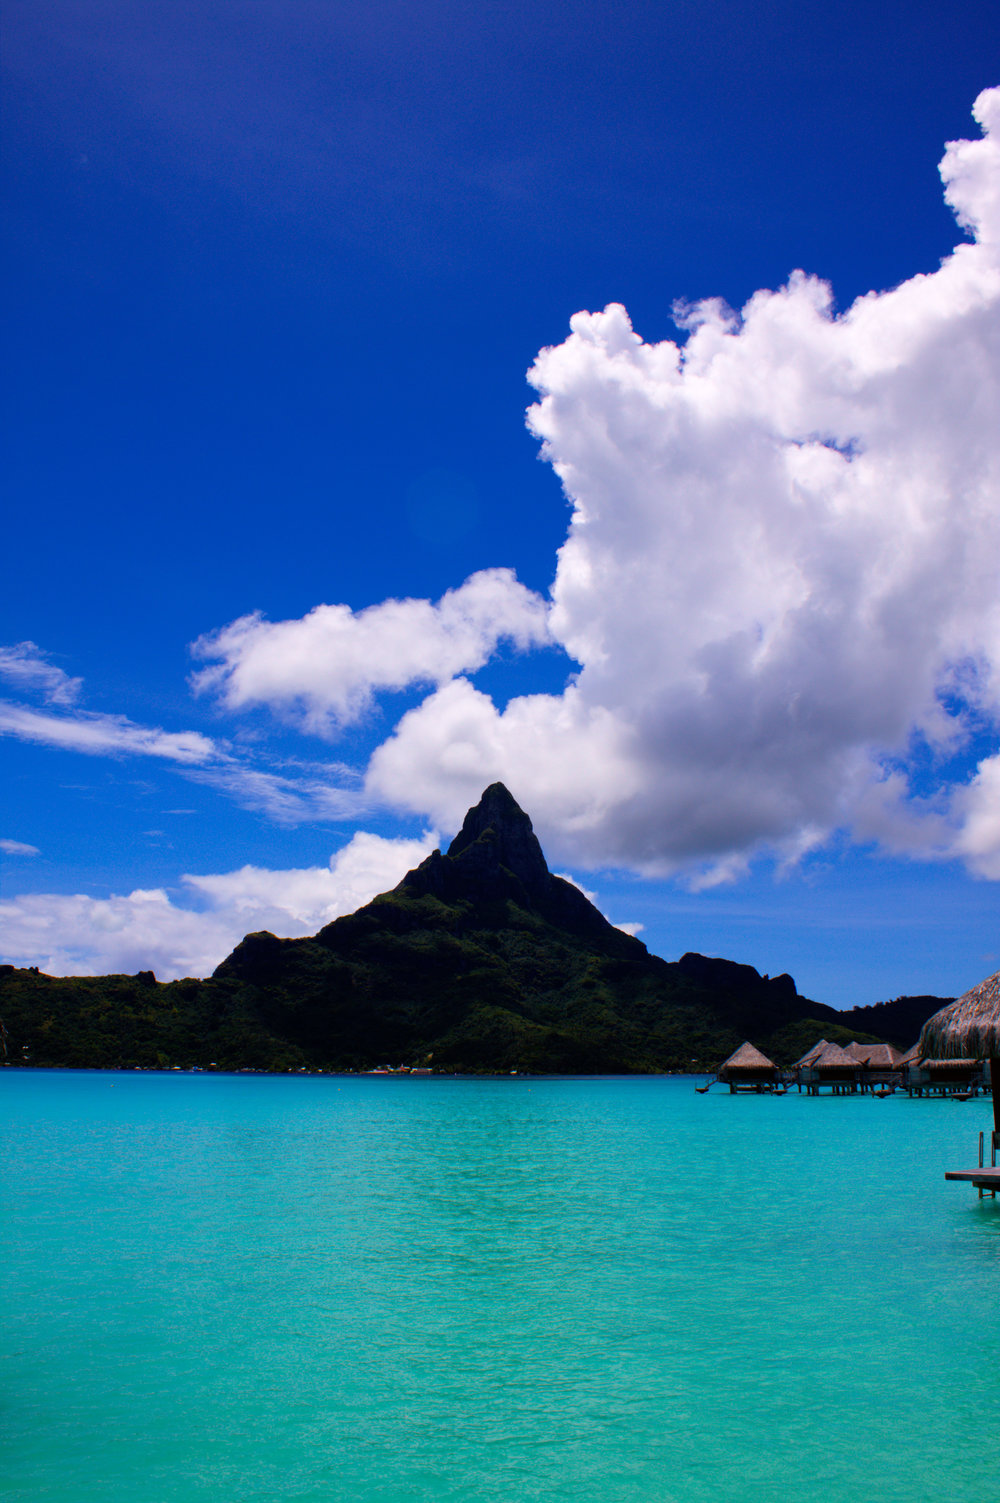 Bora Bora Views - Best hotel in Bora Bora - Wandering Jokas Travel & Ice Cream Blog